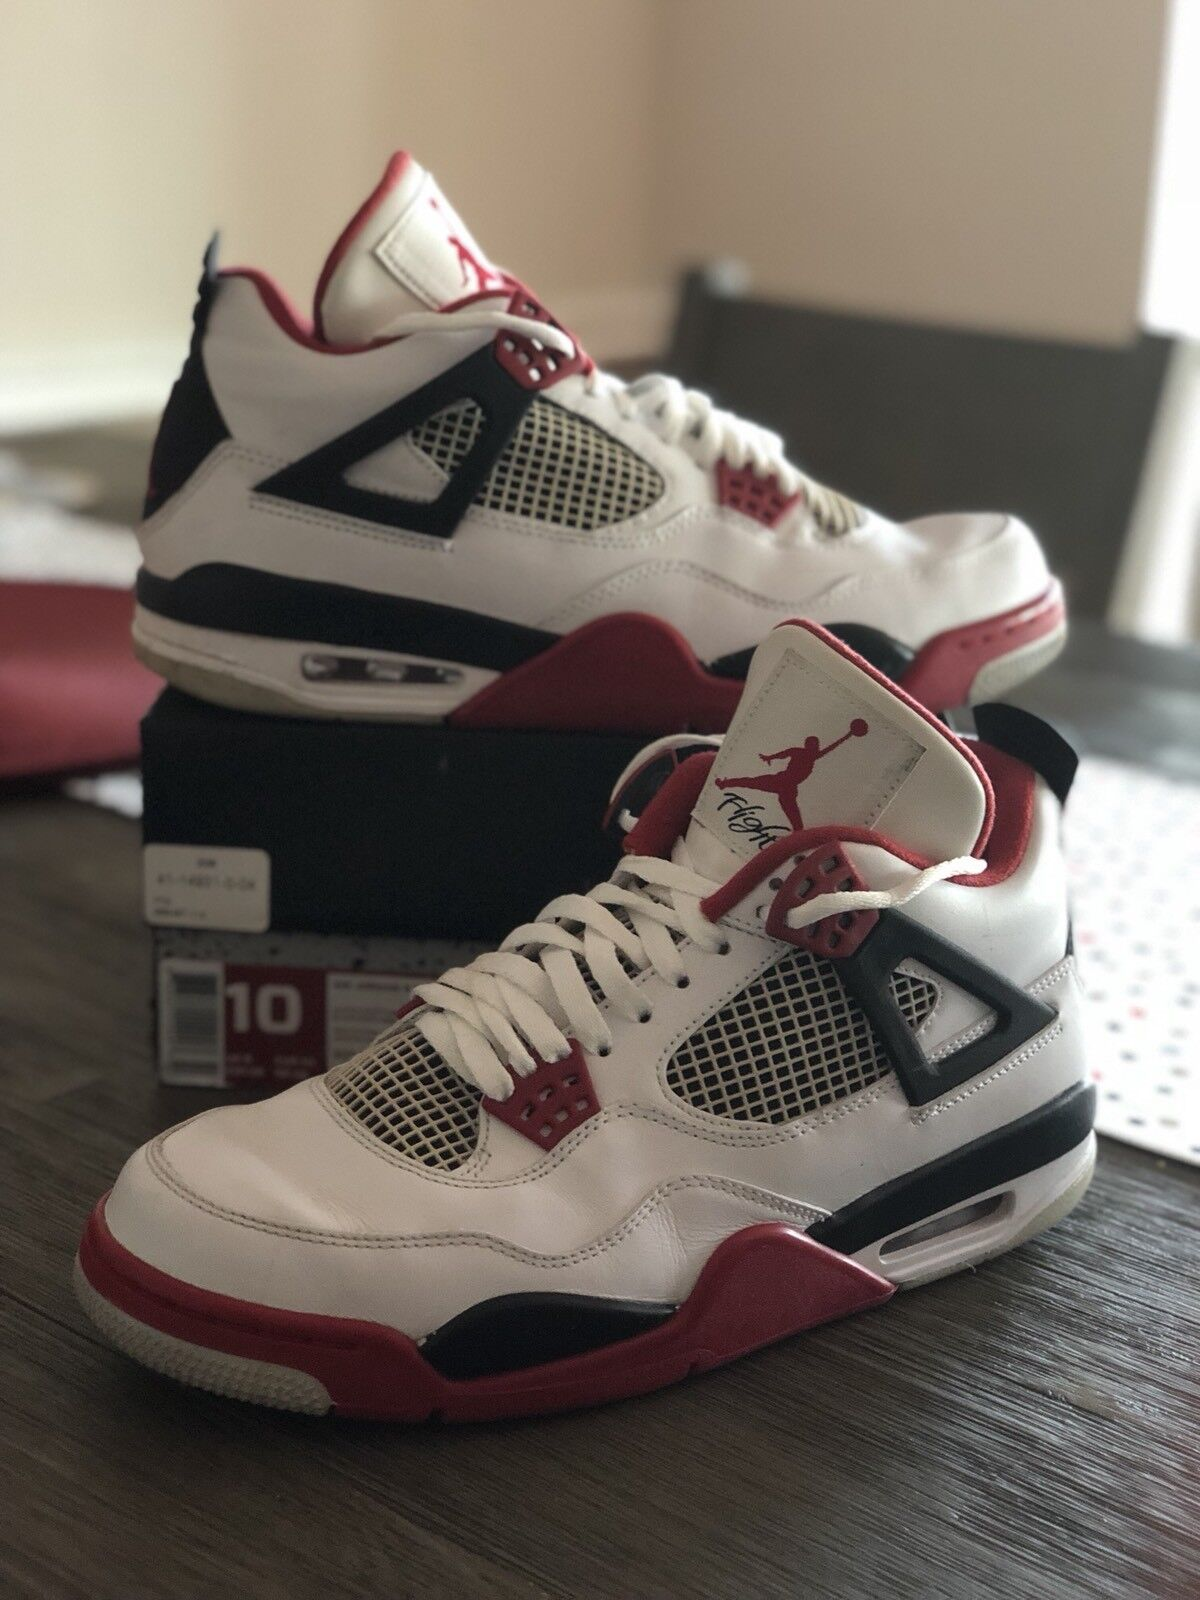 6155e3a14 ... official air jordan iv 4 retro fire 308497 red black cement grey 308497  fire 110 size